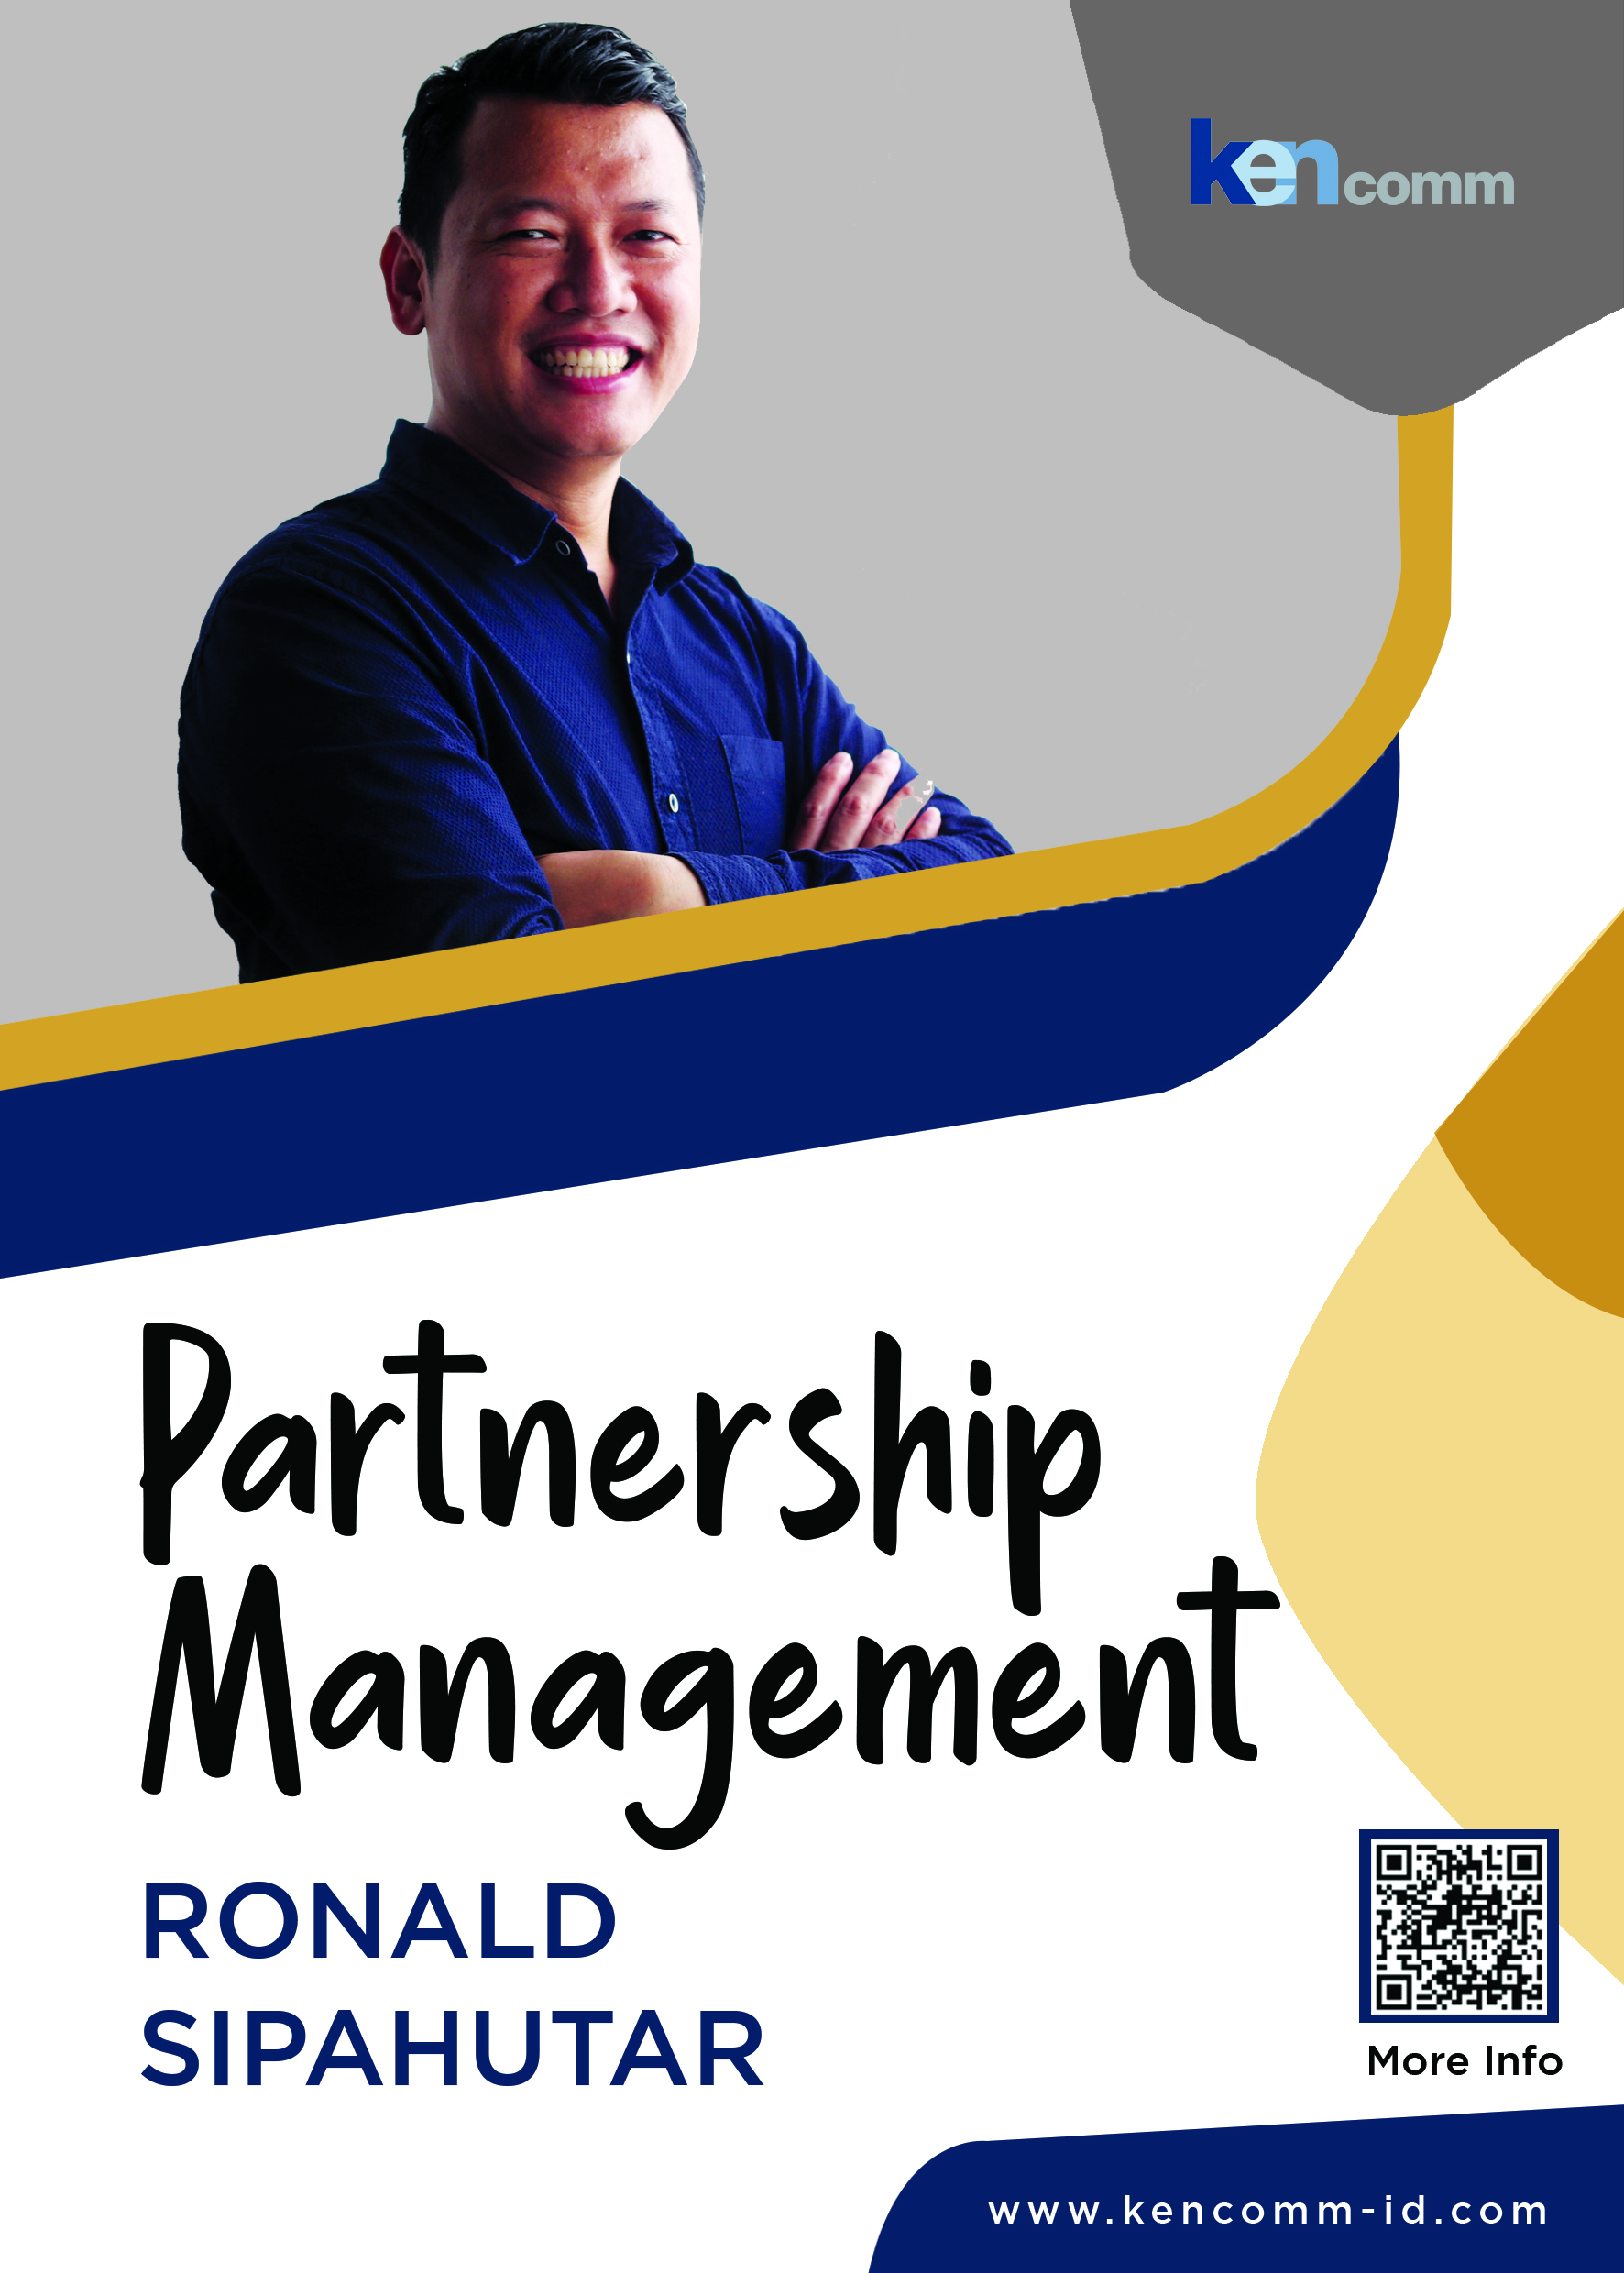 partnership management-Ronald